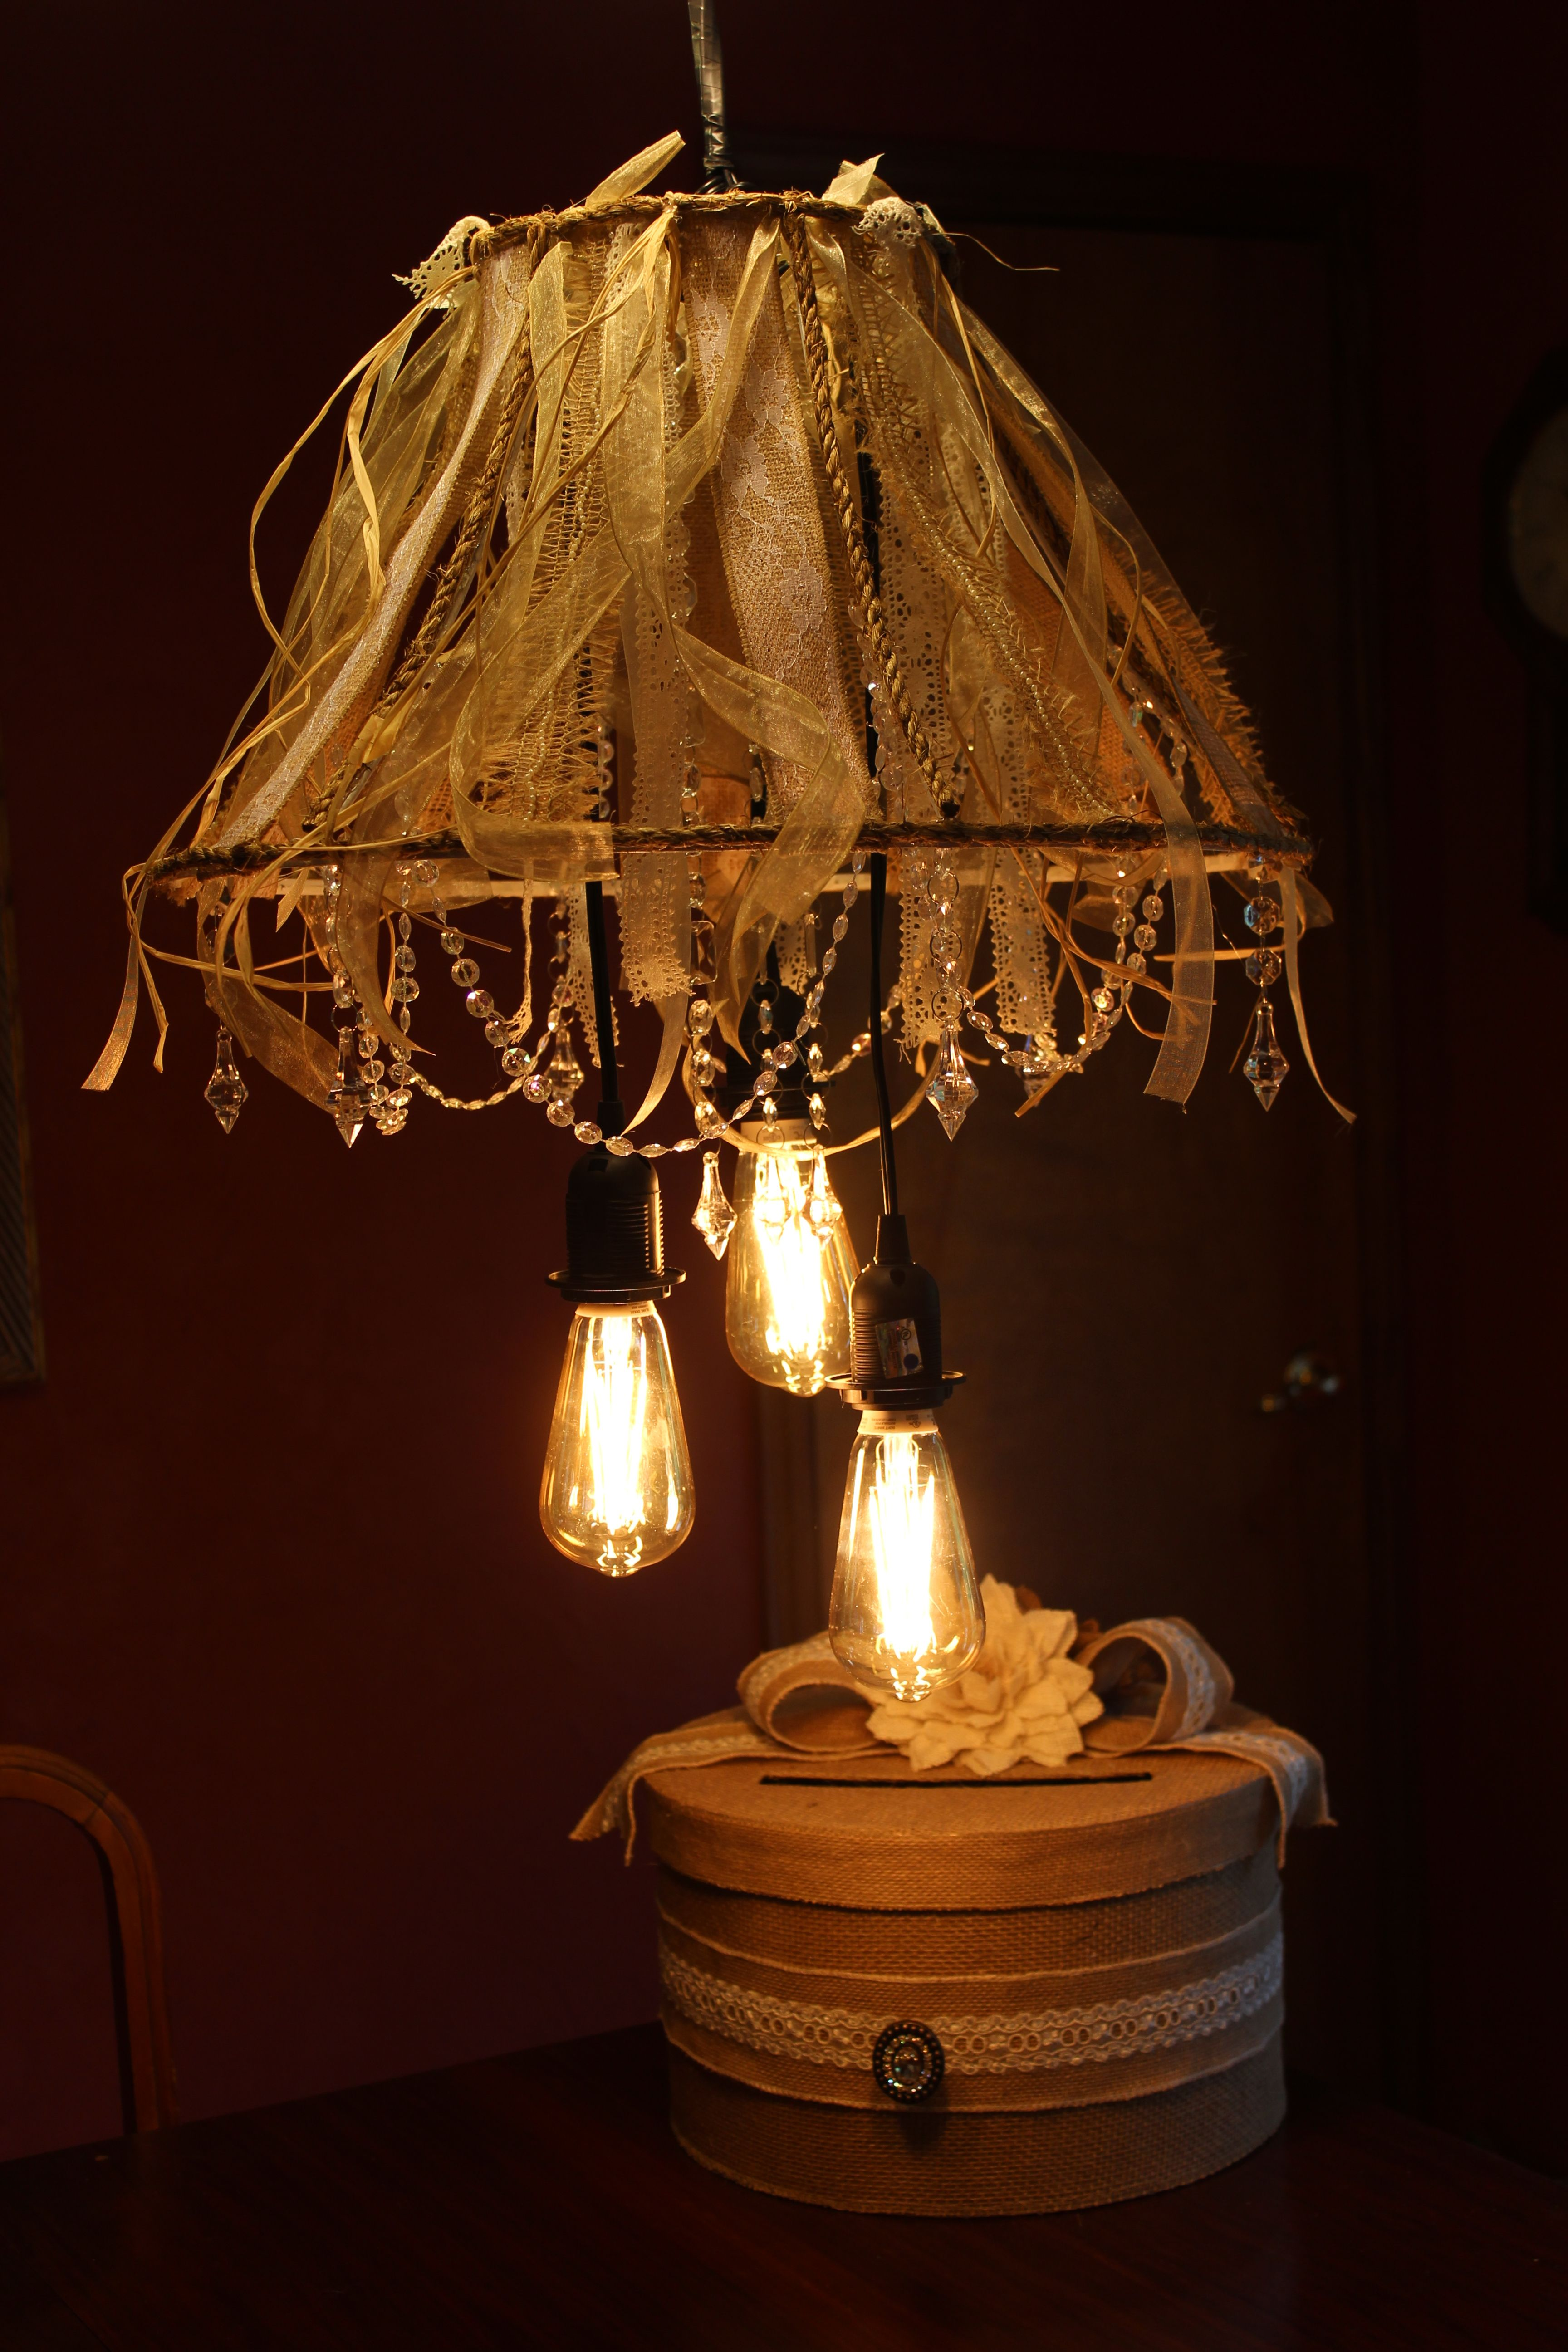 DIY lamp shade shabby chic/rustic chandelier Rustic